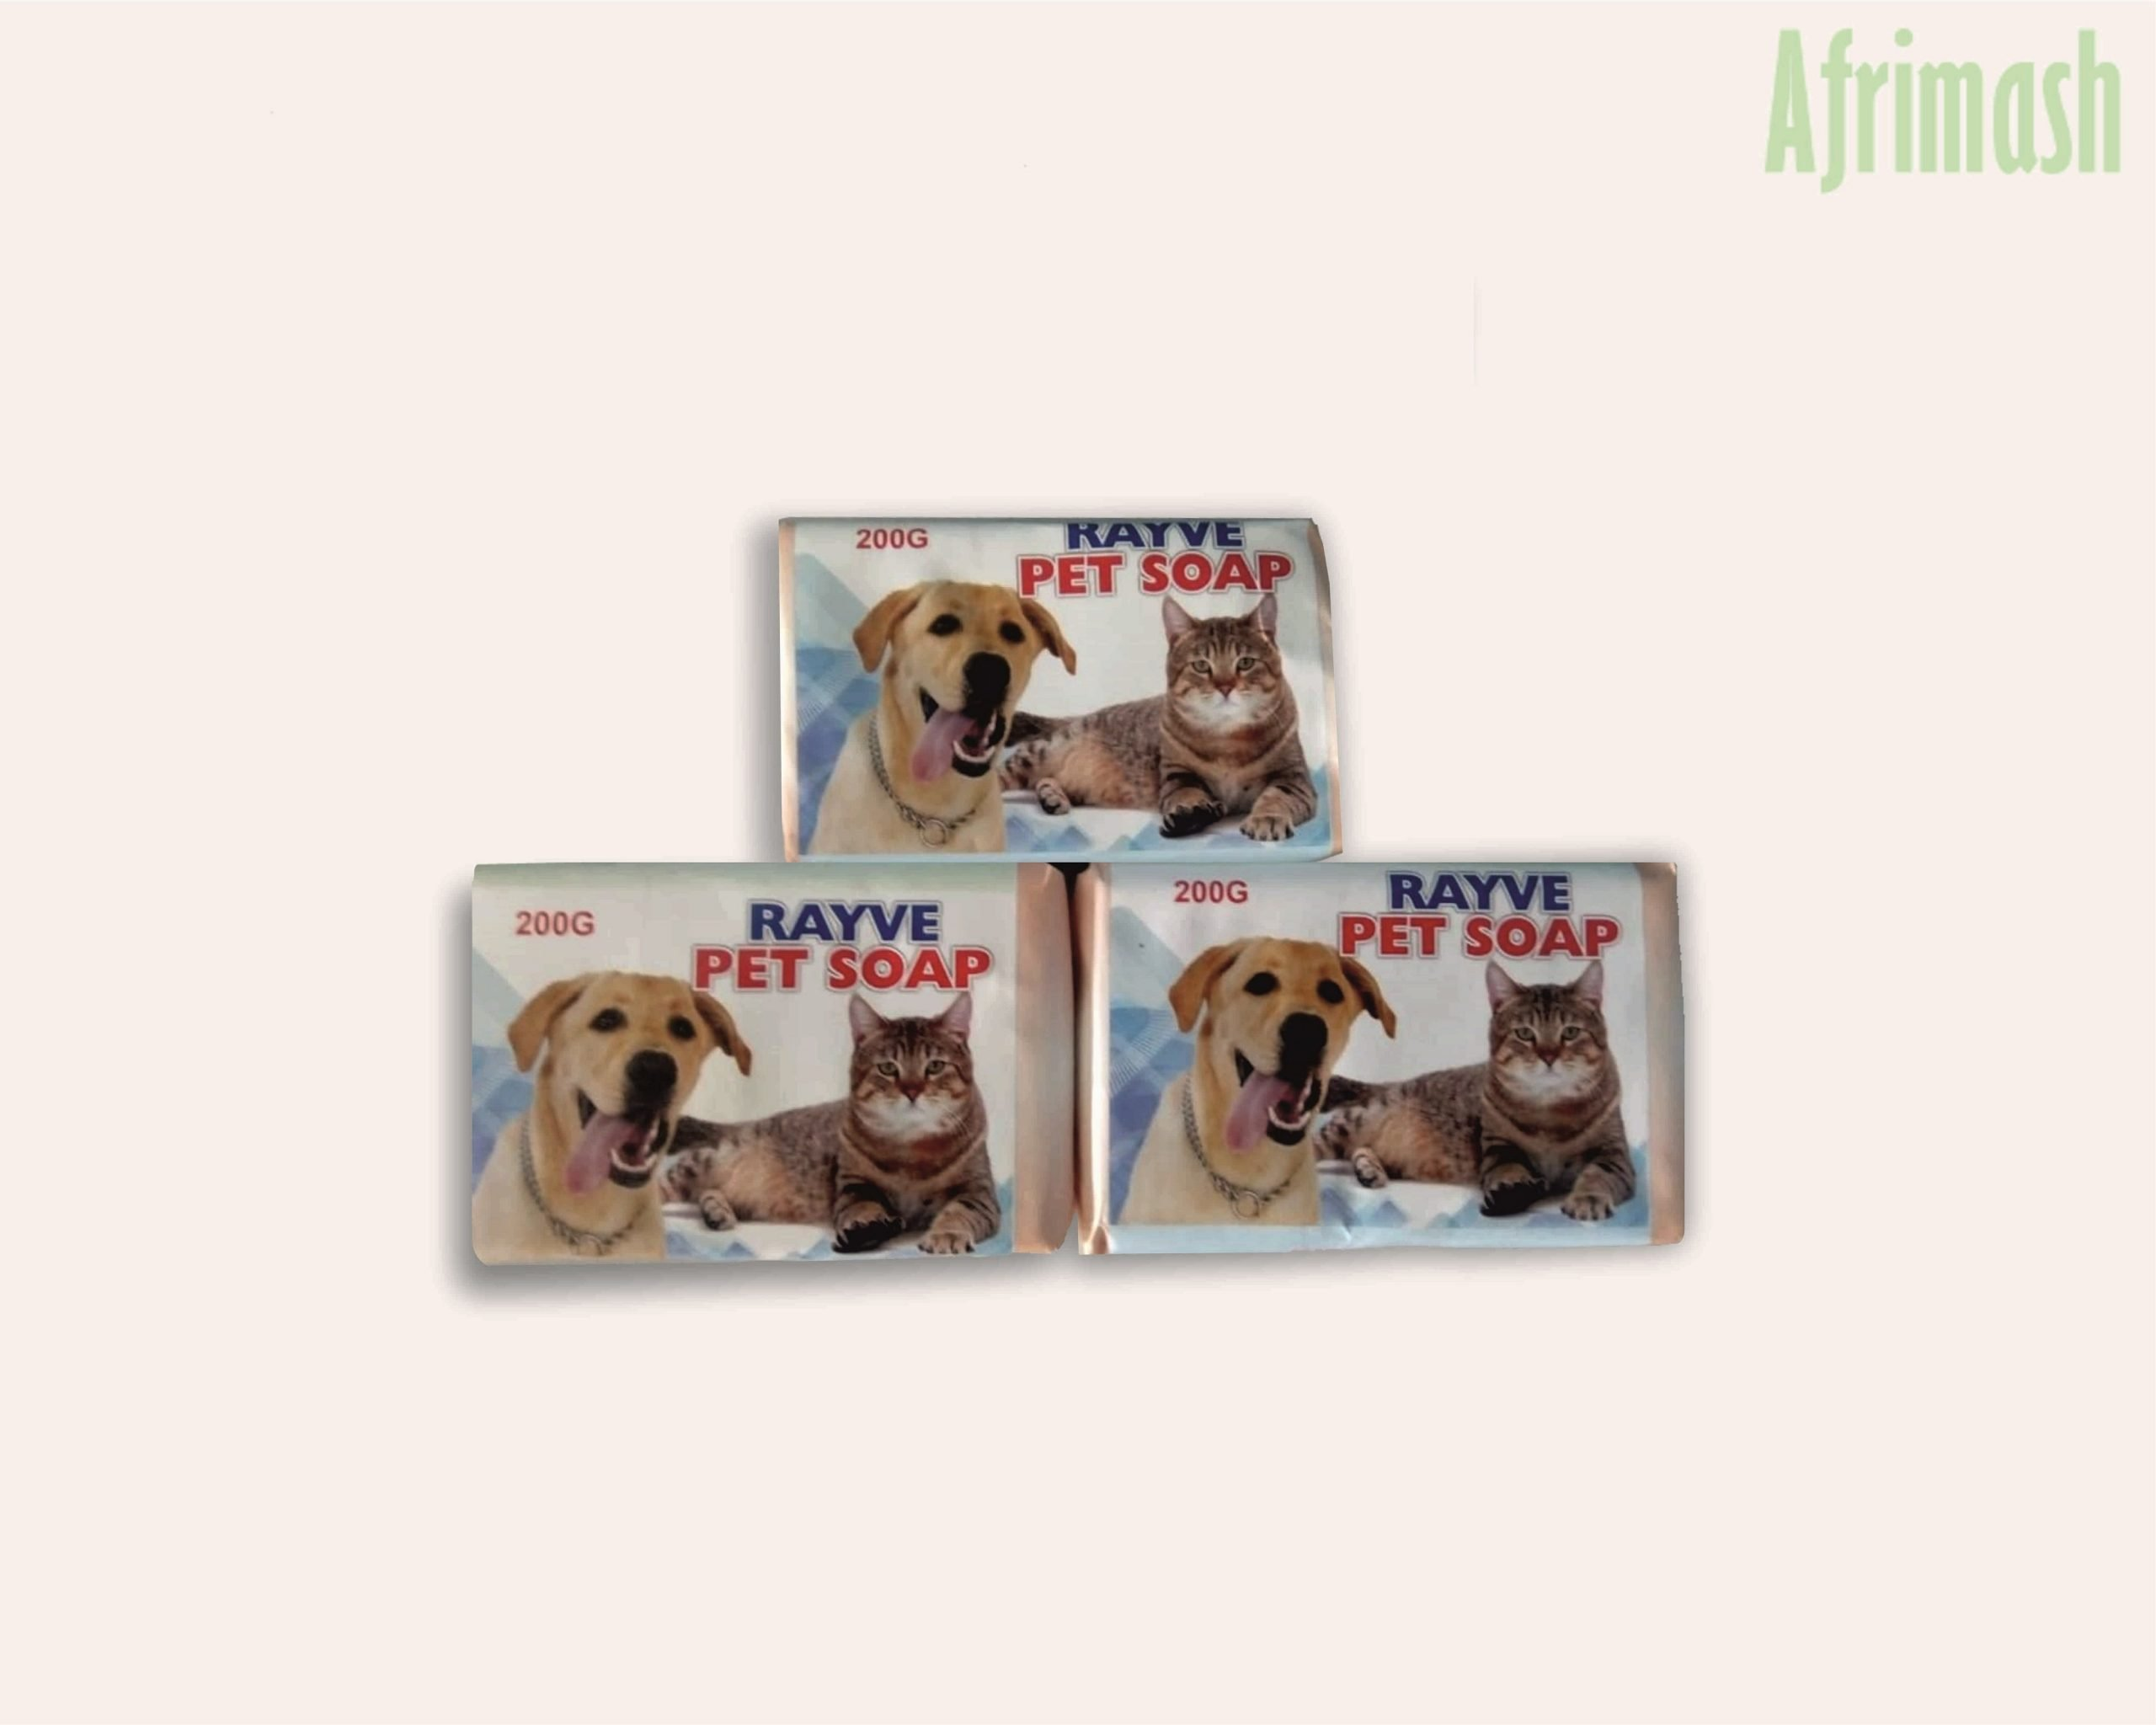 Rayve pet soap